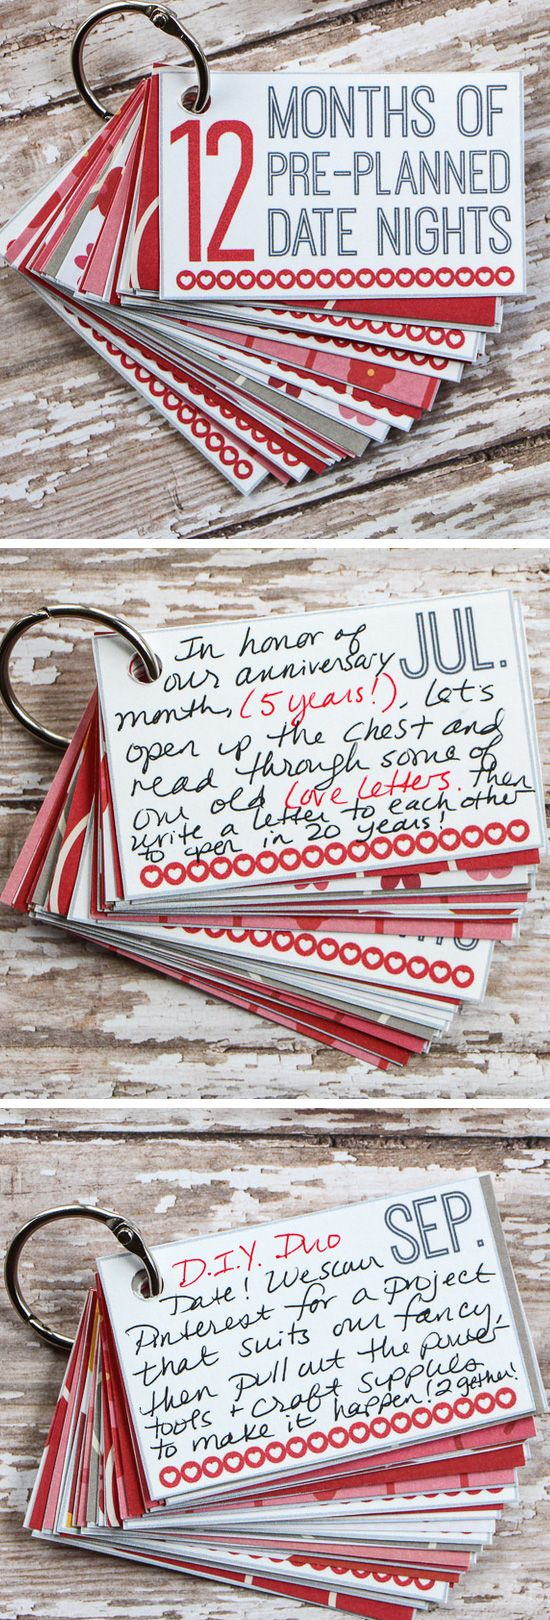 12 Months of Date Nights Gift | Click Pic for 44 DIY Valentine Gifts for Him | DIY Valentine Gifts for Boyfriend